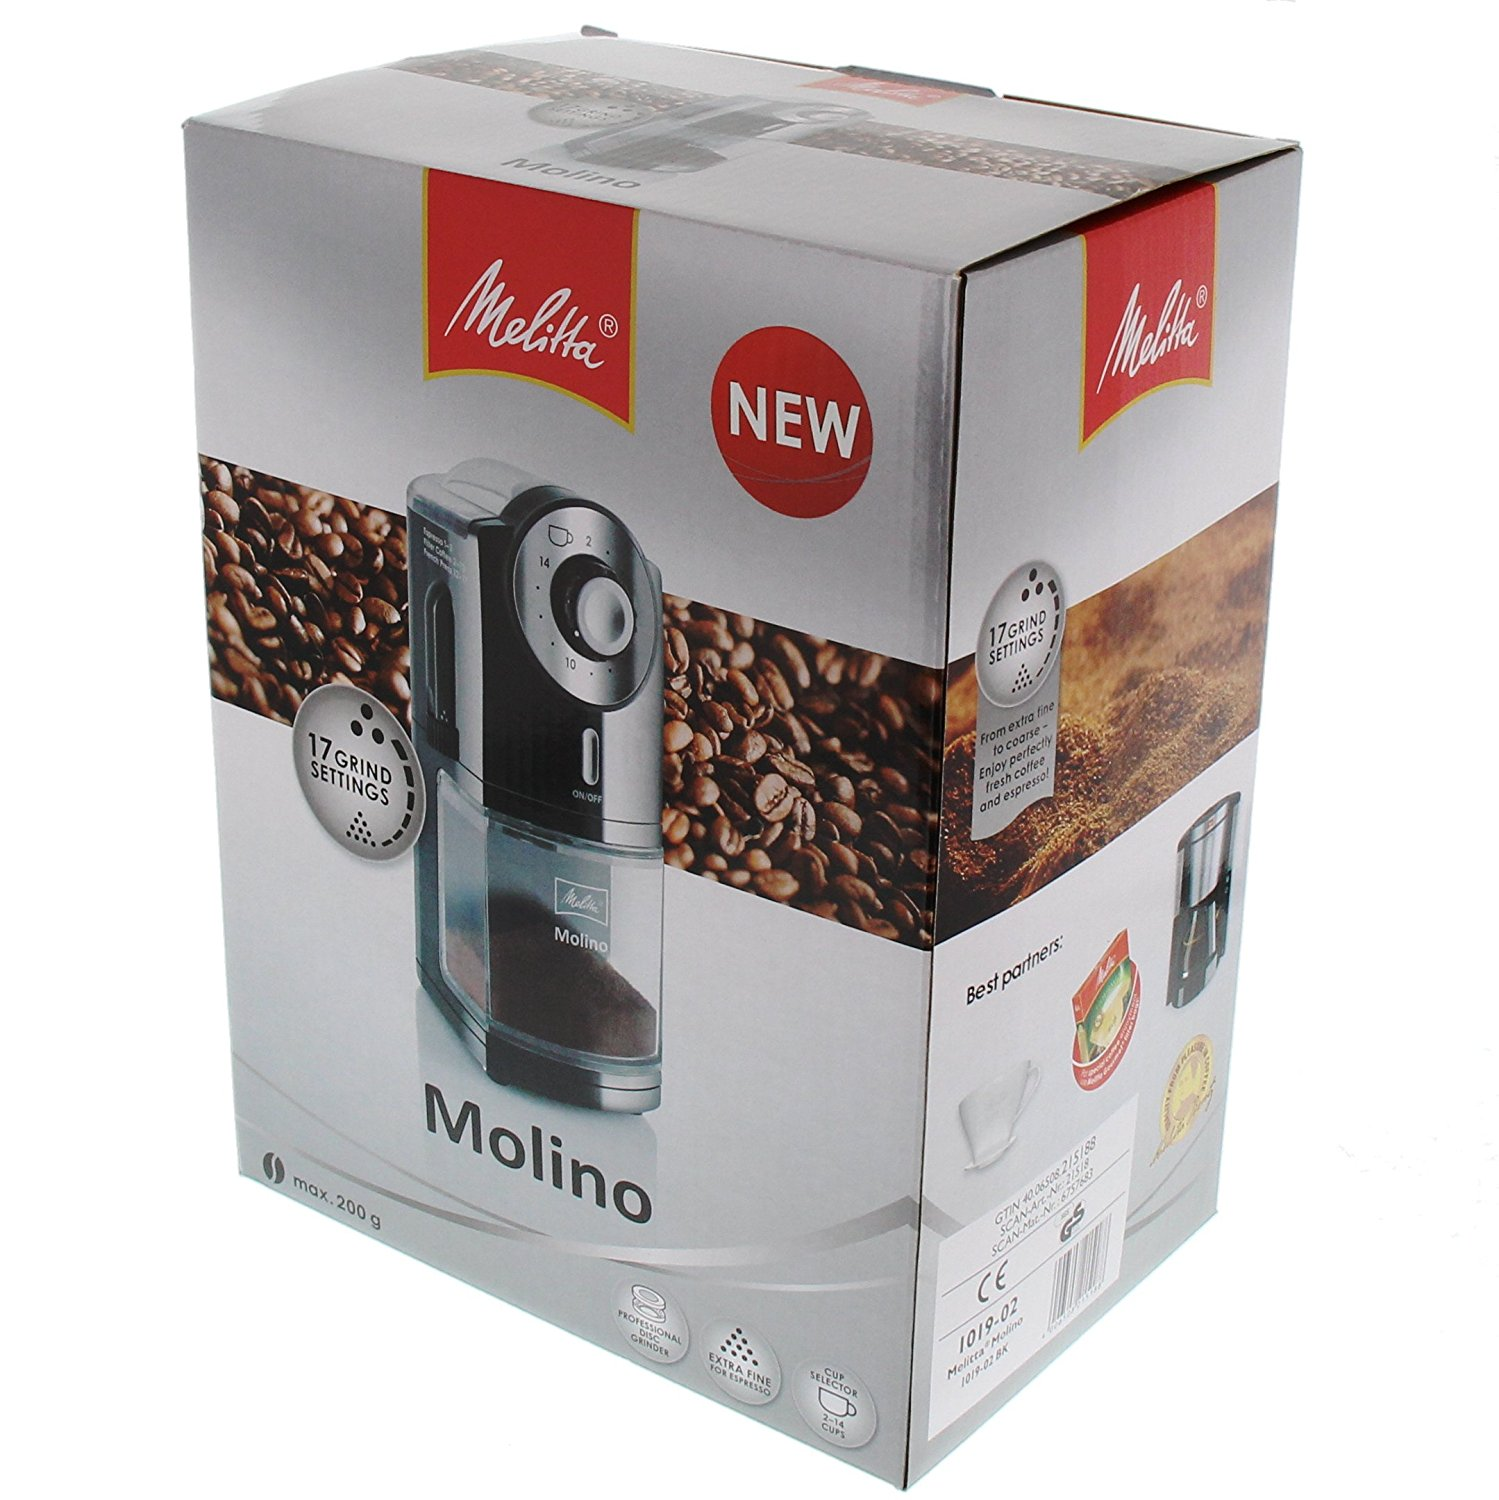 Melitta 1019 02 moulin caf lectrique molino yeepa - Moulin a cafe melitta ...